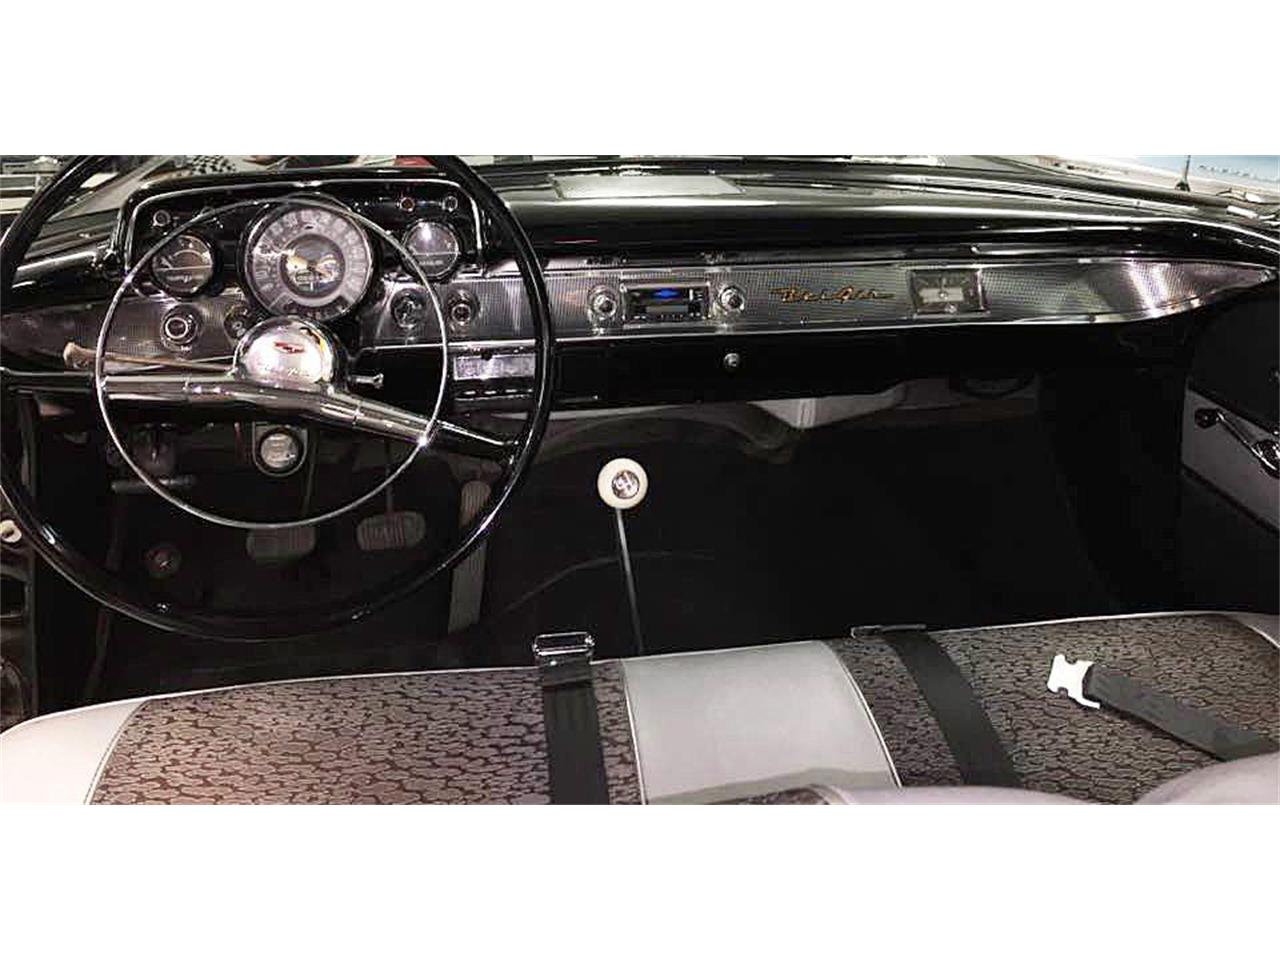 Large Picture of Classic 1957 Chevrolet Bel Air located in Malone New York Auction Vehicle - KNXD